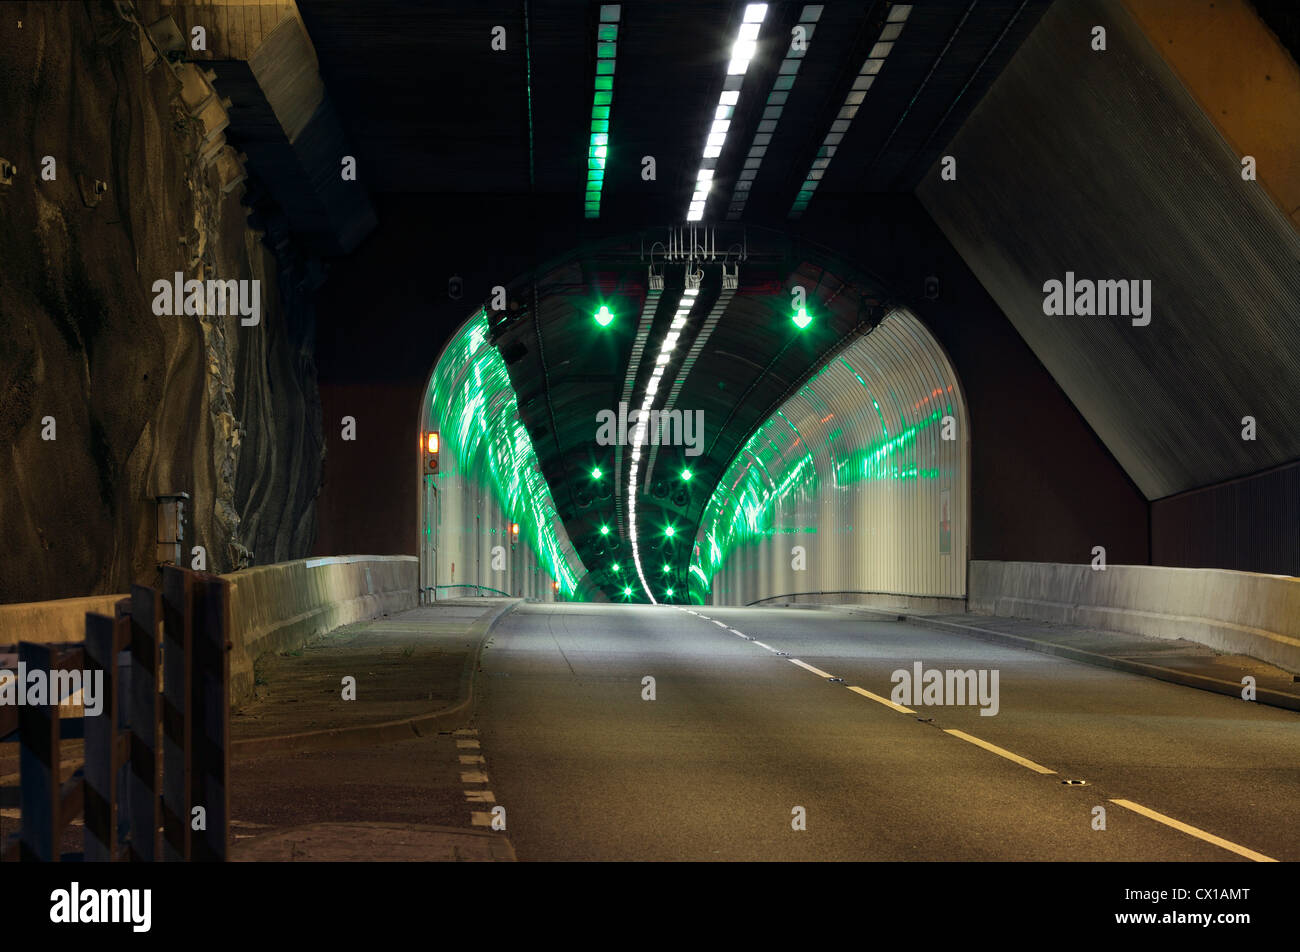 One of the Pen-y-clip road tunnels on the A55(T) road between Penmaenmawr and Llanfairfechan, North Wales. - Stock Image